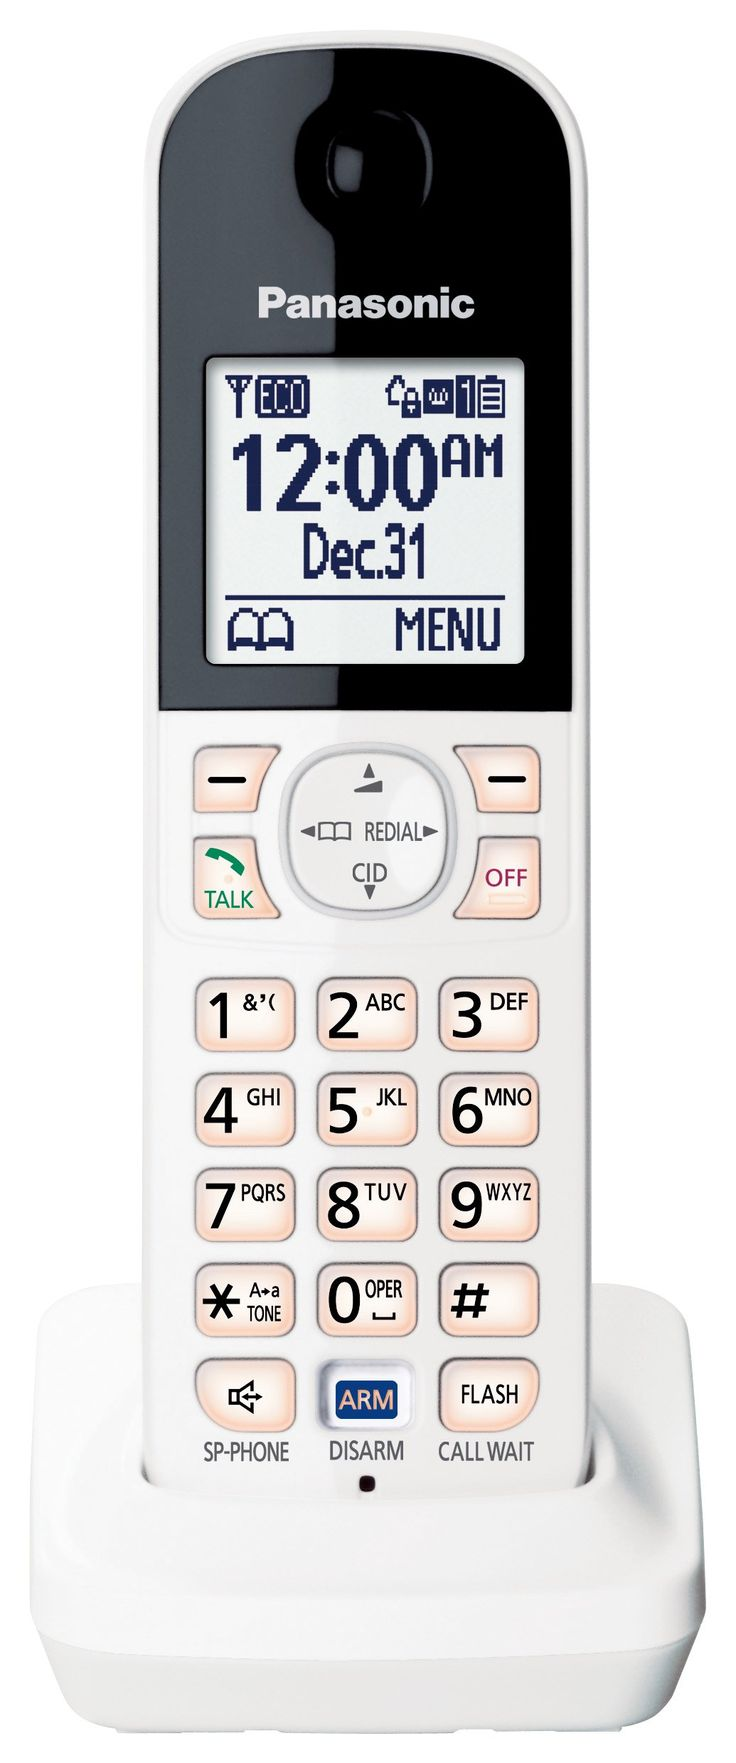 Panasonic KX-HNH100W Digital Cordless Handset for Smart Home Monitoring System (White)